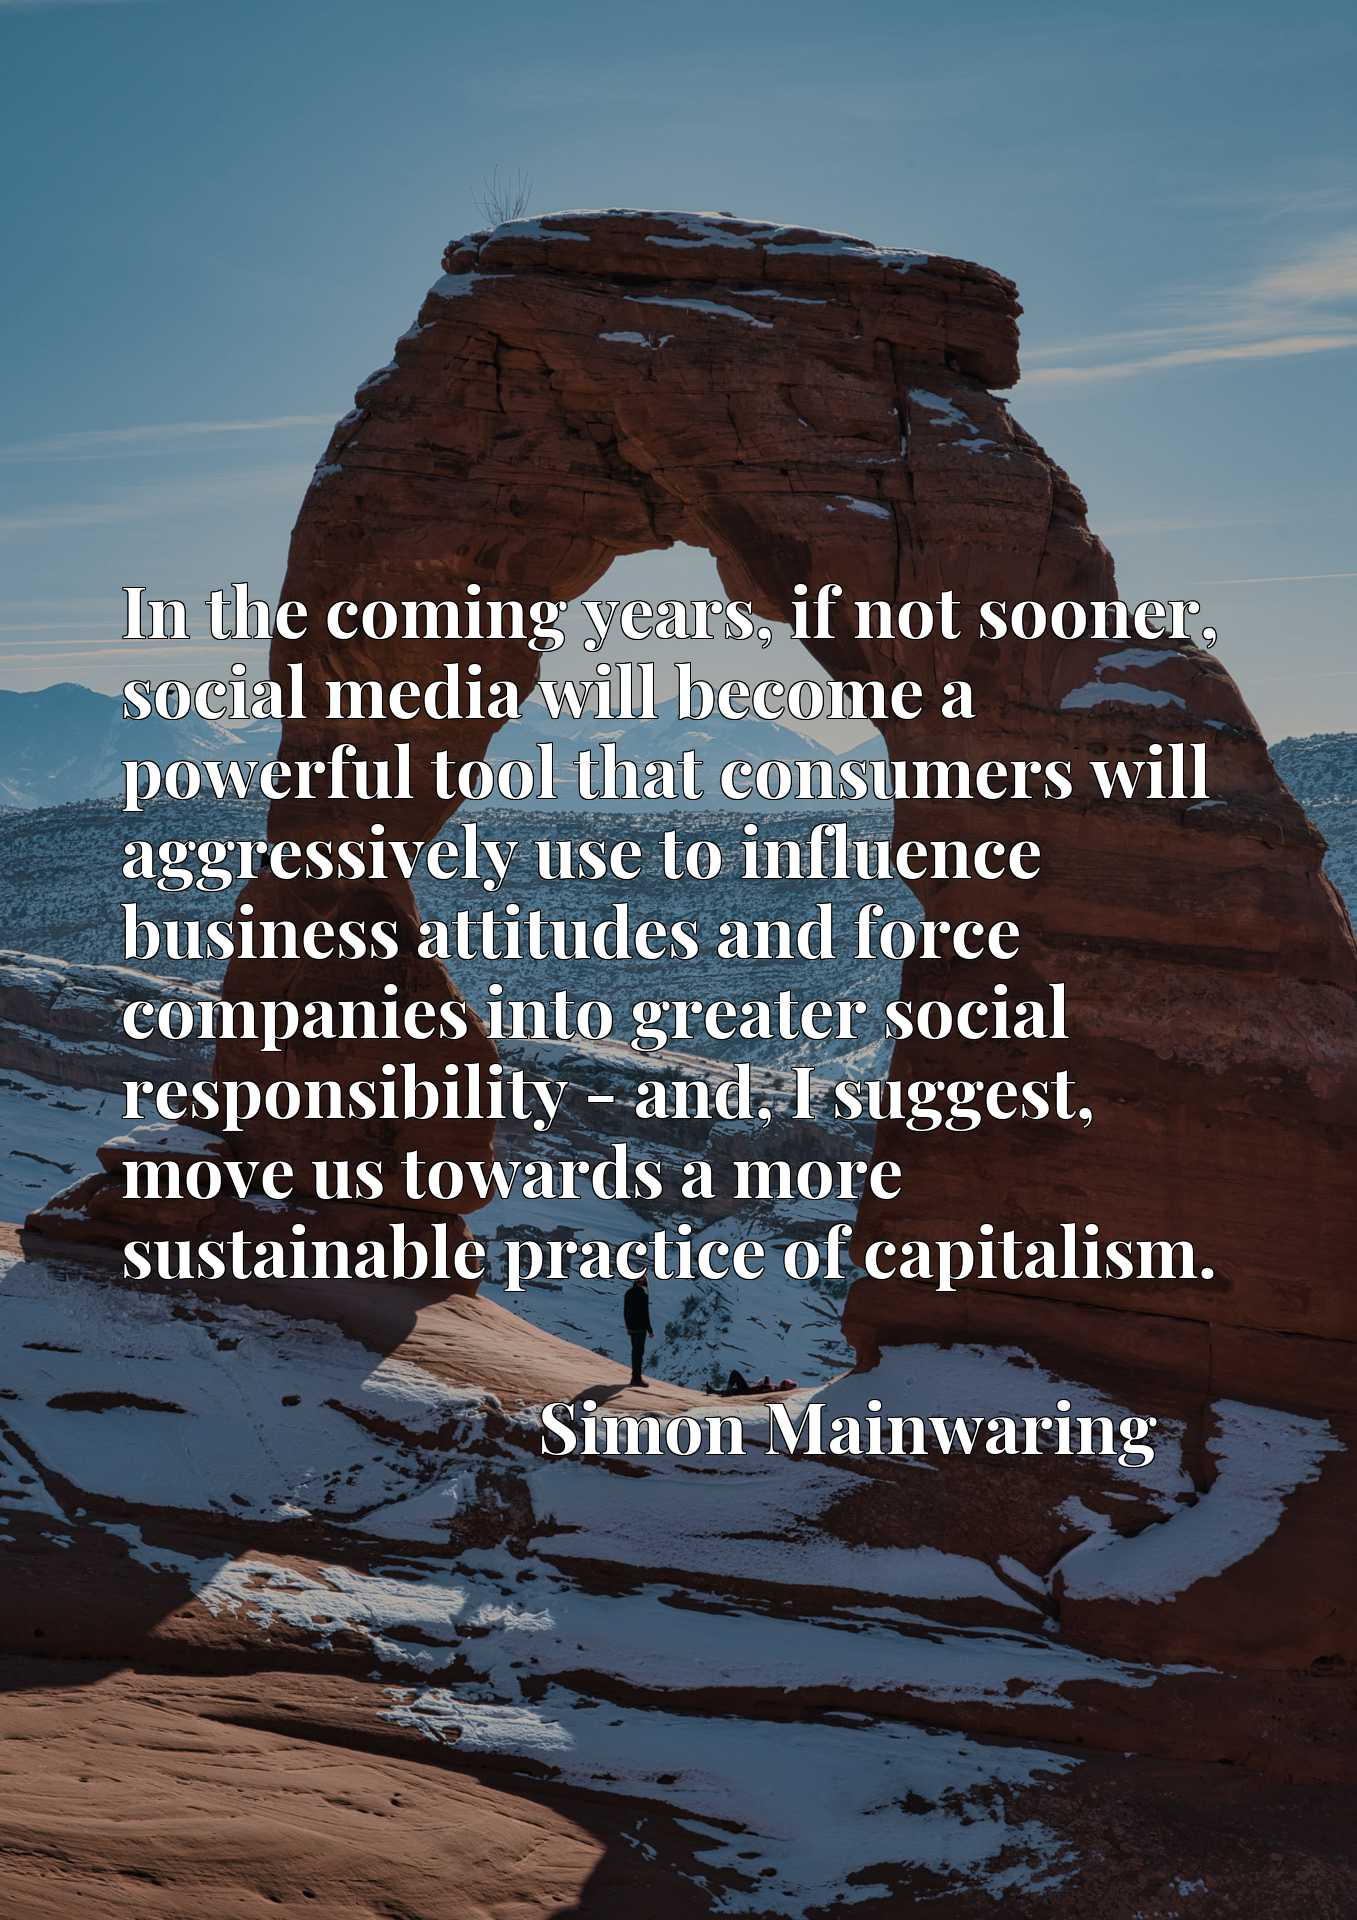 In the coming years, if not sooner, social media will become a powerful tool that consumers will aggressively use to influence business attitudes and force companies into greater social responsibility - and, I suggest, move us towards a more sustainable practice of capitalism.